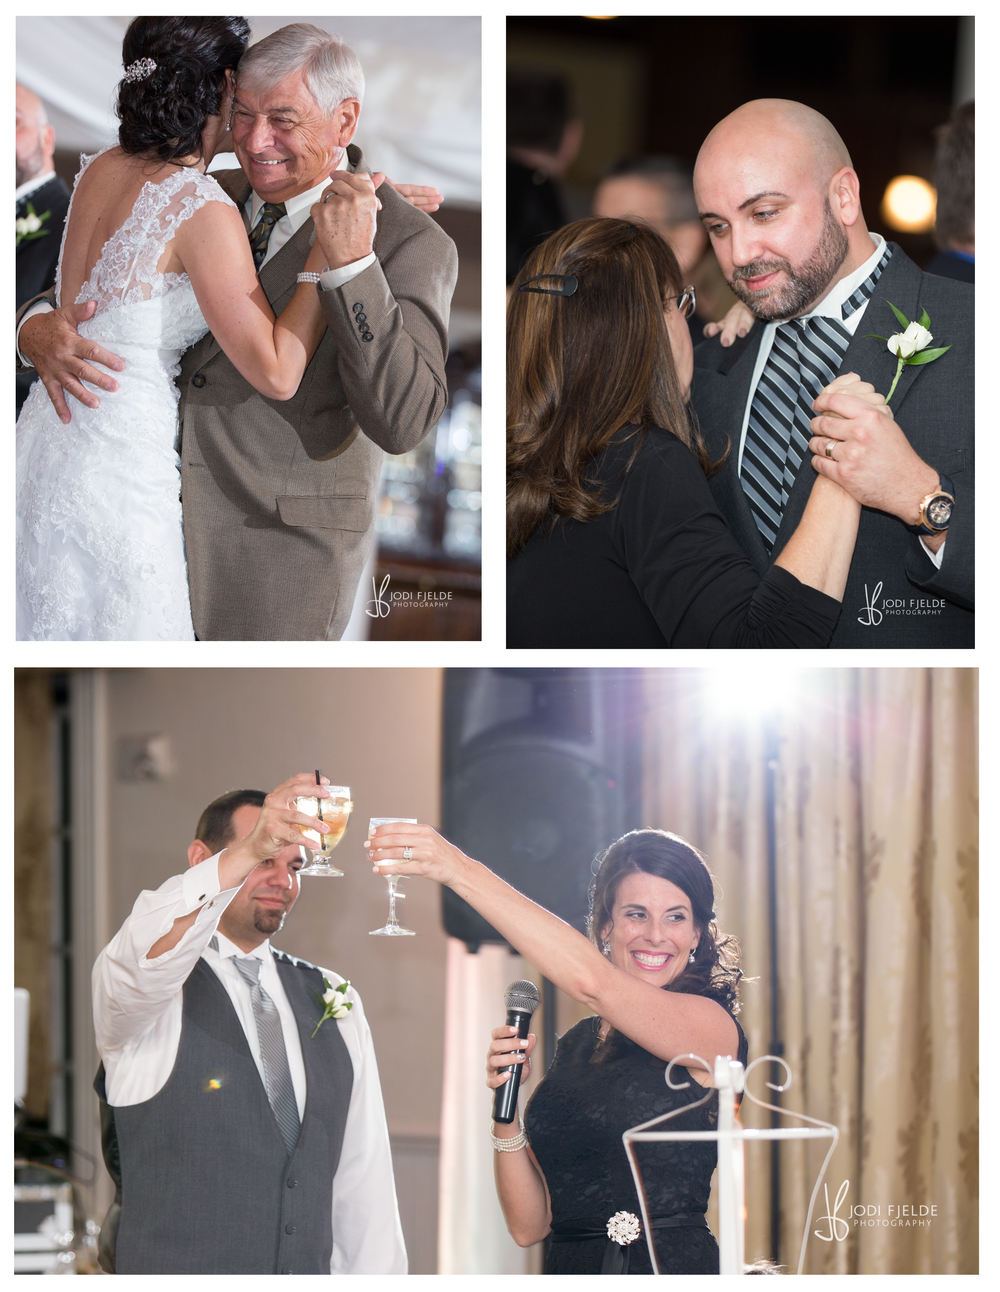 Highland_Manor_Apopka_Florida_wedding_Jackie_&_Tim_photography_jodi_Fjelde_photography-29.jpg